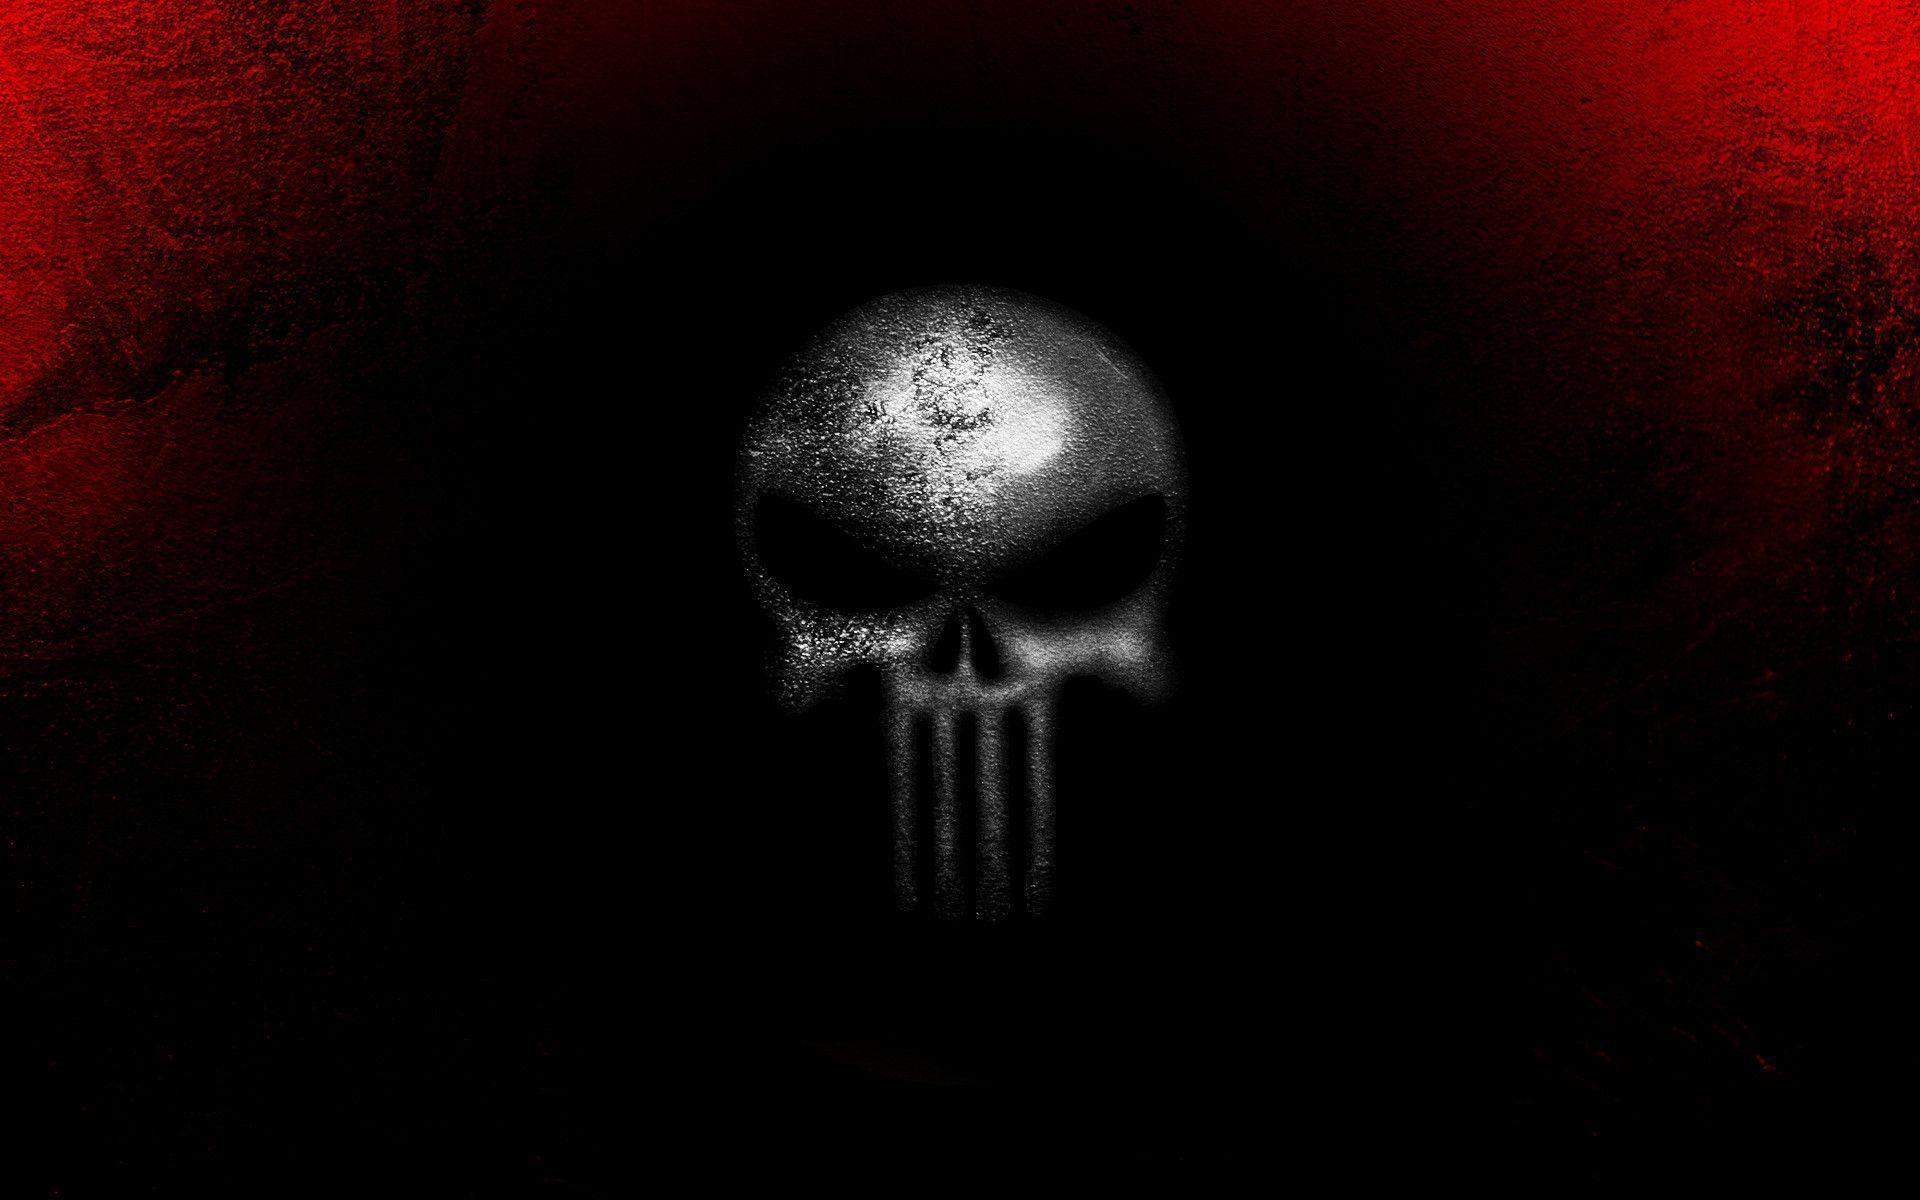 punisher logo wallpapers - photo #19